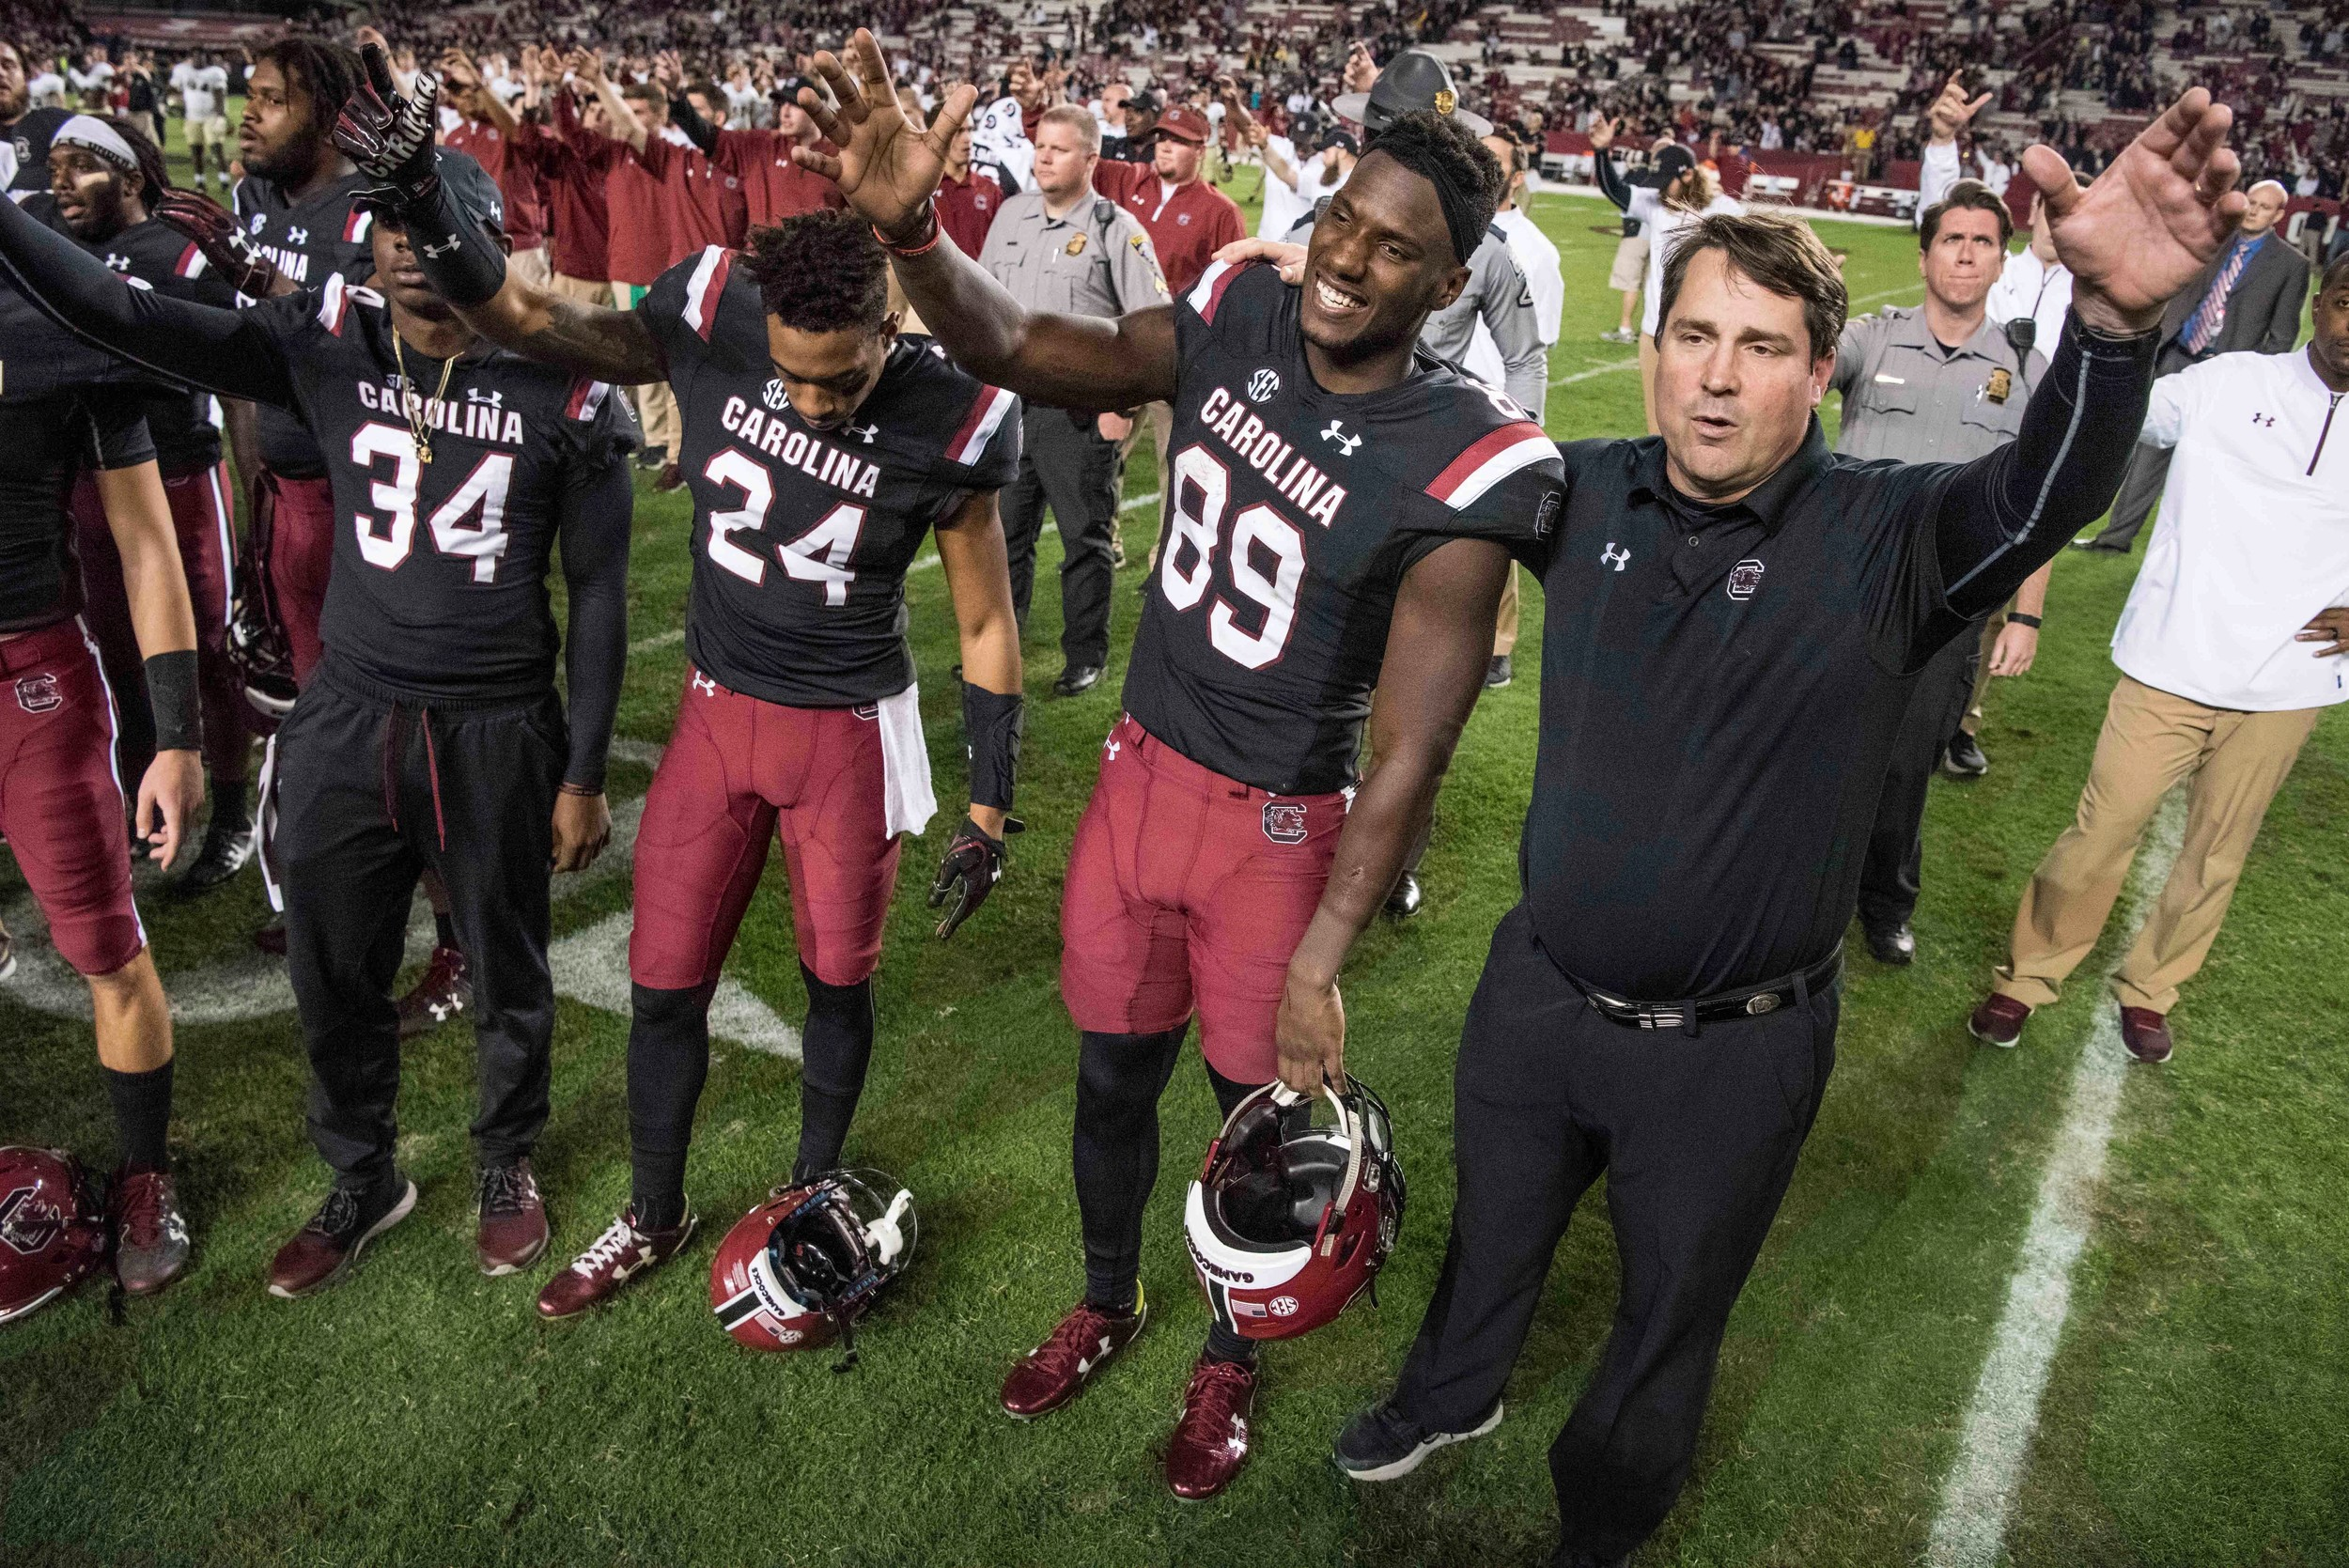 South Carolina head coach Will Muschamp, right, and wide receiver Bryan Edwards (89) participate in the alma mater after the conclusion an NCAA college football game on Saturday, Nov. 18, 2017 in Columbia, S.C. South Carolina defeated Wofford 31-10. (AP Photo/Sean Rayford)